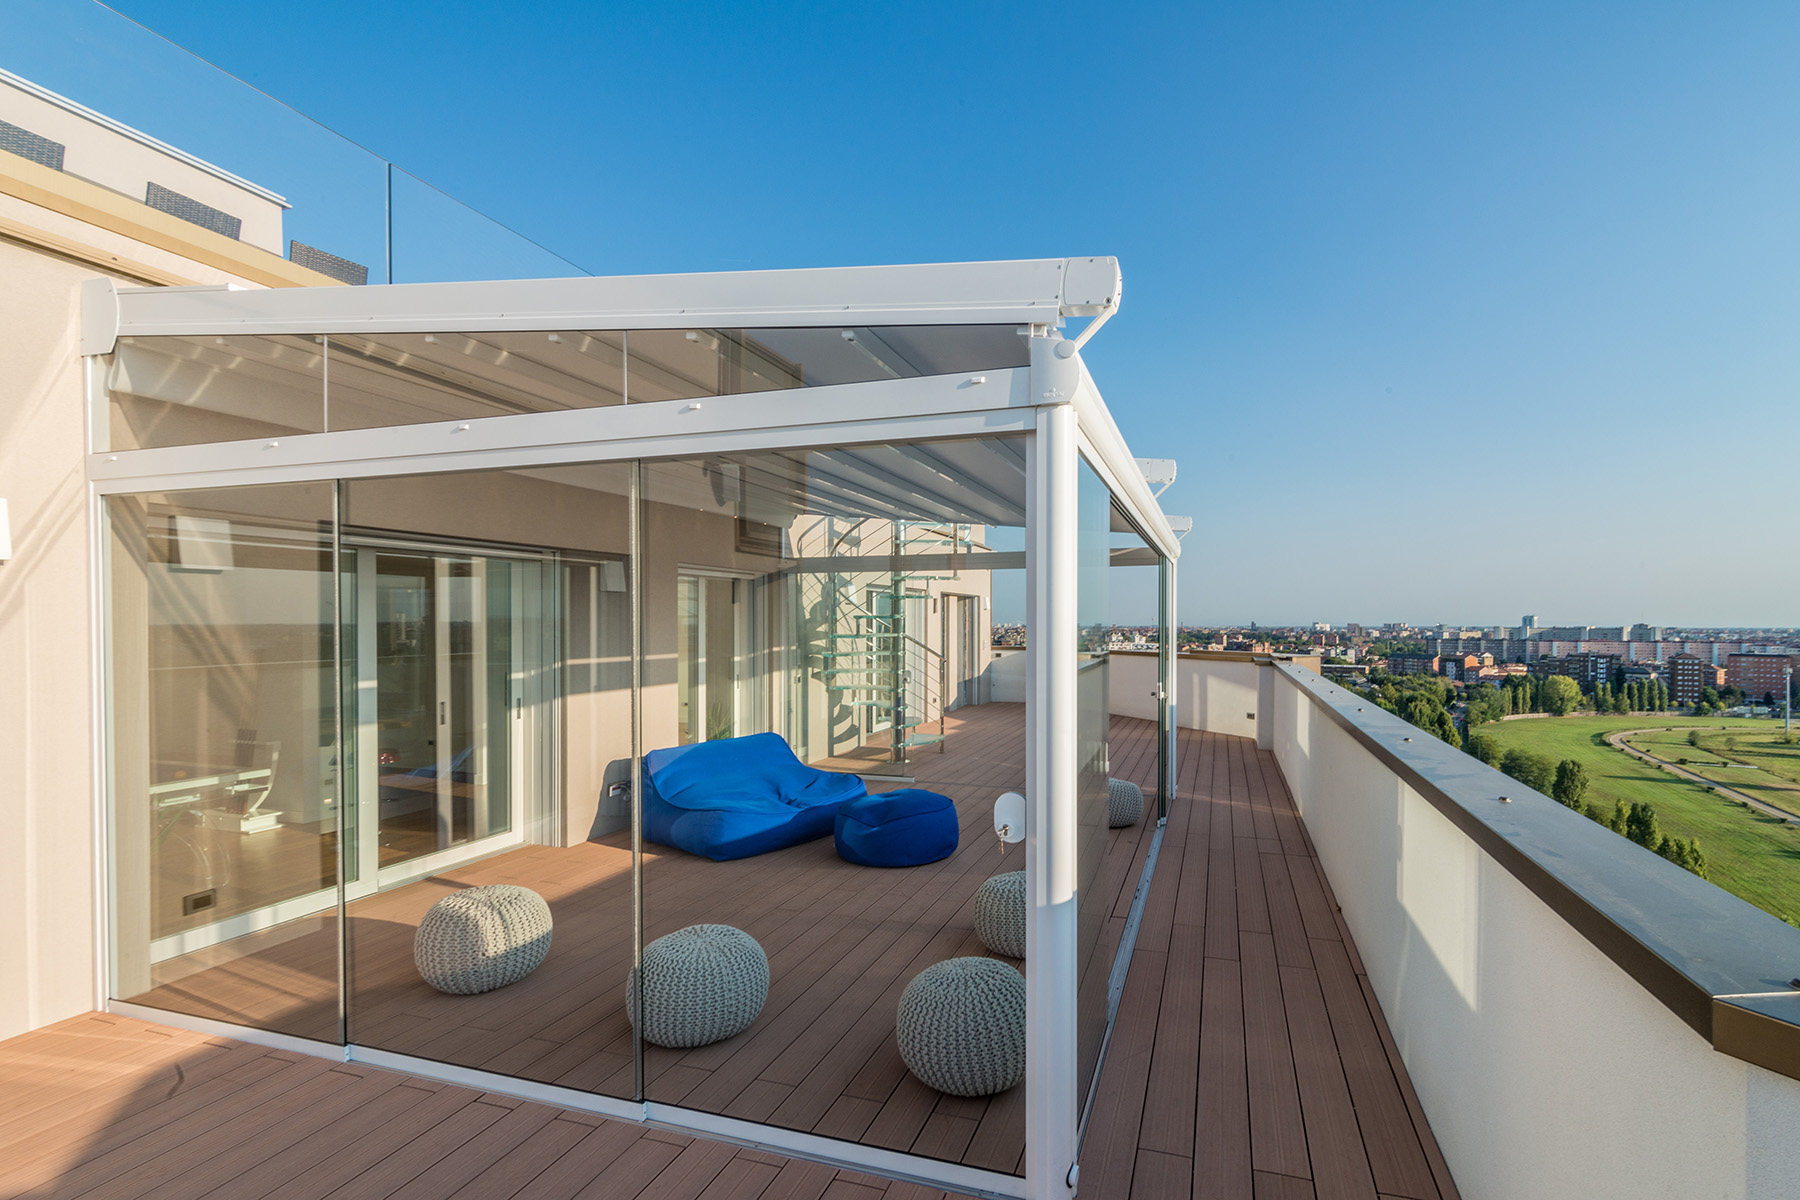 Additional photo for property listing at Unique triplex with panoramic pool and views of the skyline and beyond Via Pinerolo Milano, Milan 20121 Italie